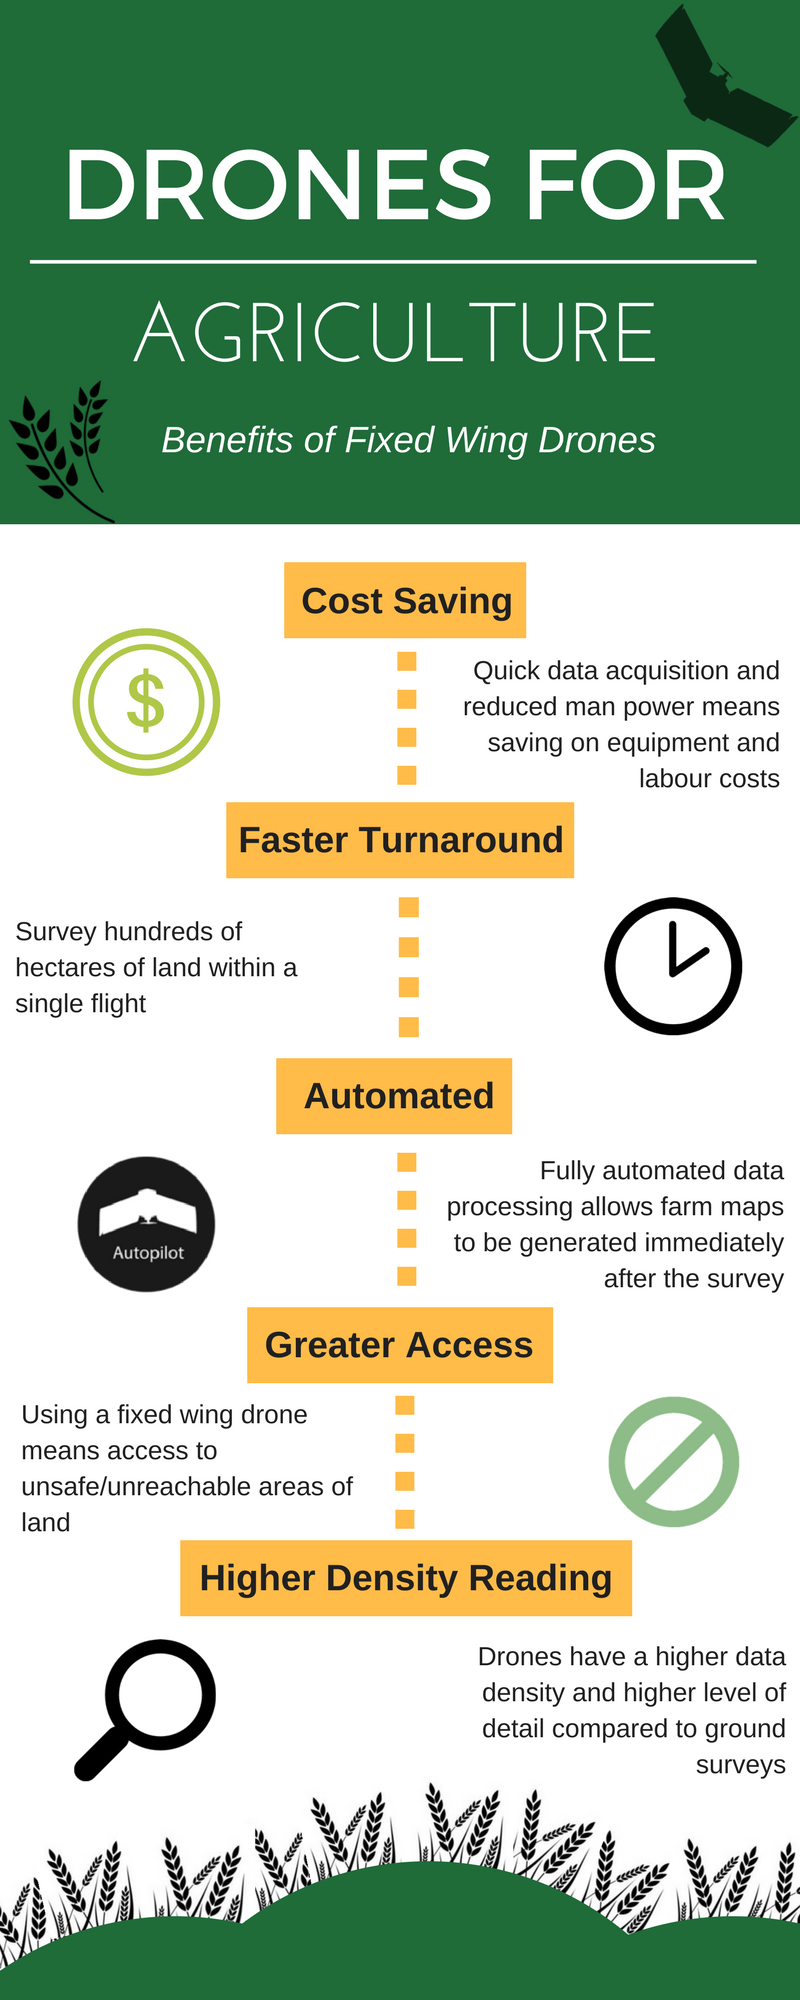 Drones for Agriculture #infographic | Drones in 2019